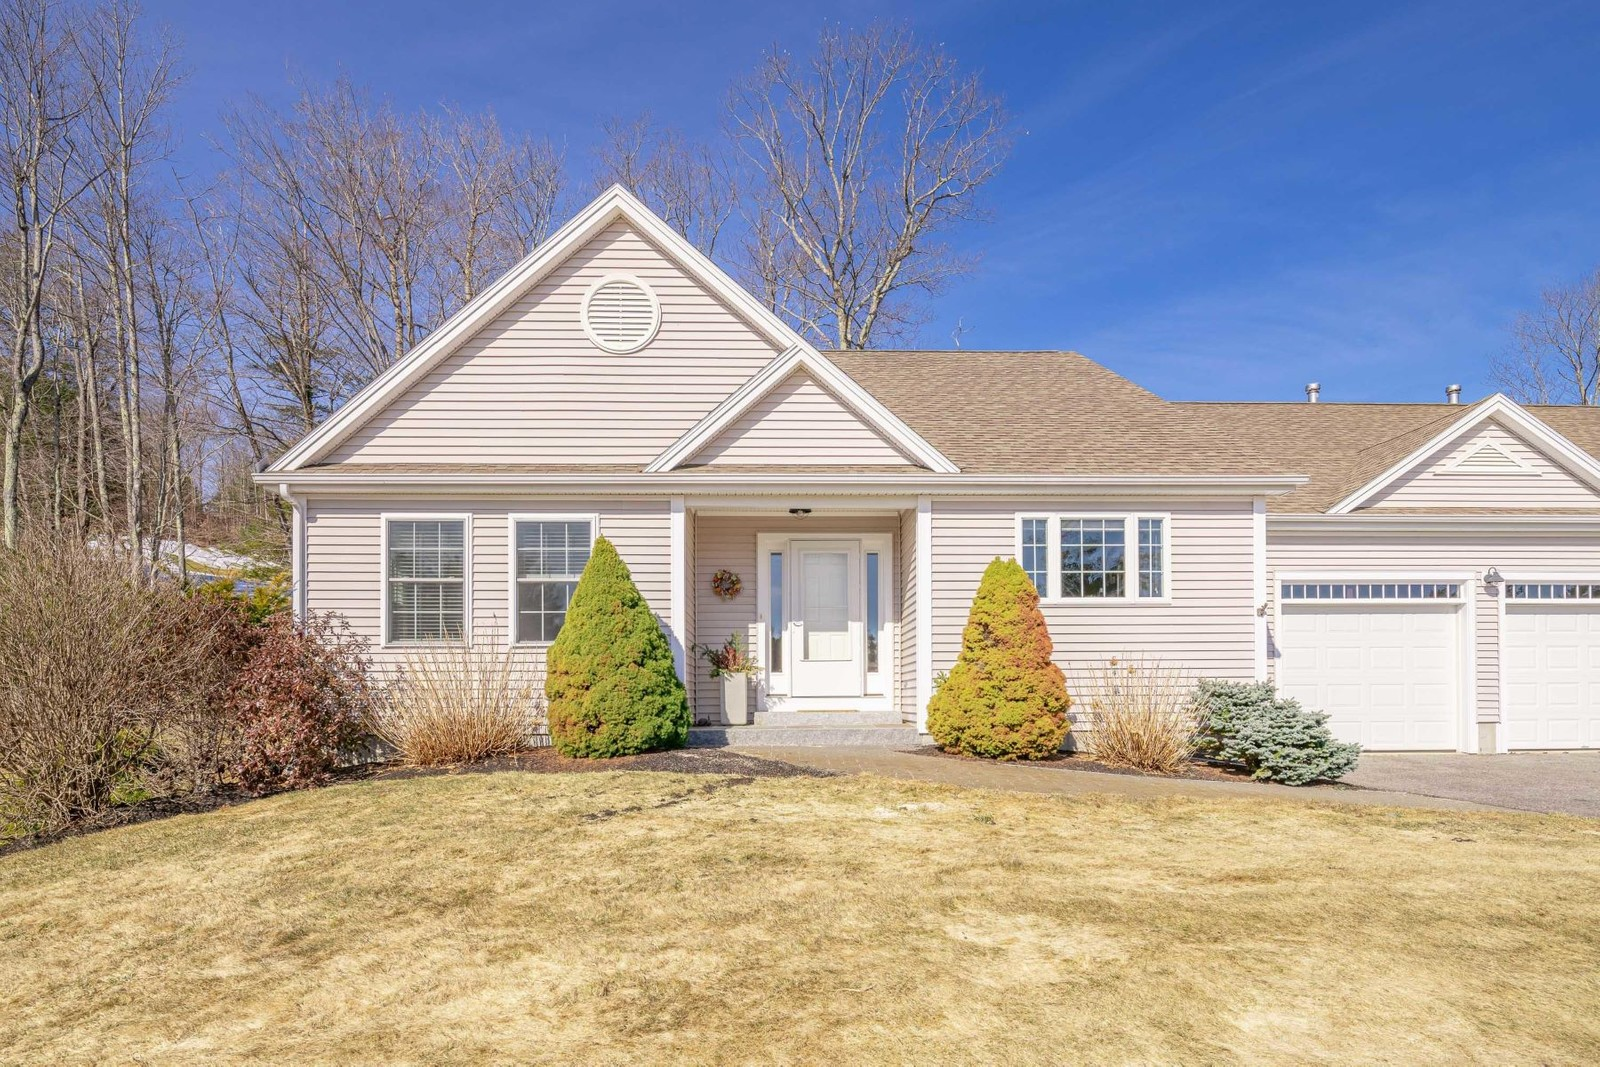 Condominiums for Sale at 30 Hazel Lane 3 North Yarmouth, Maine 04097 United States